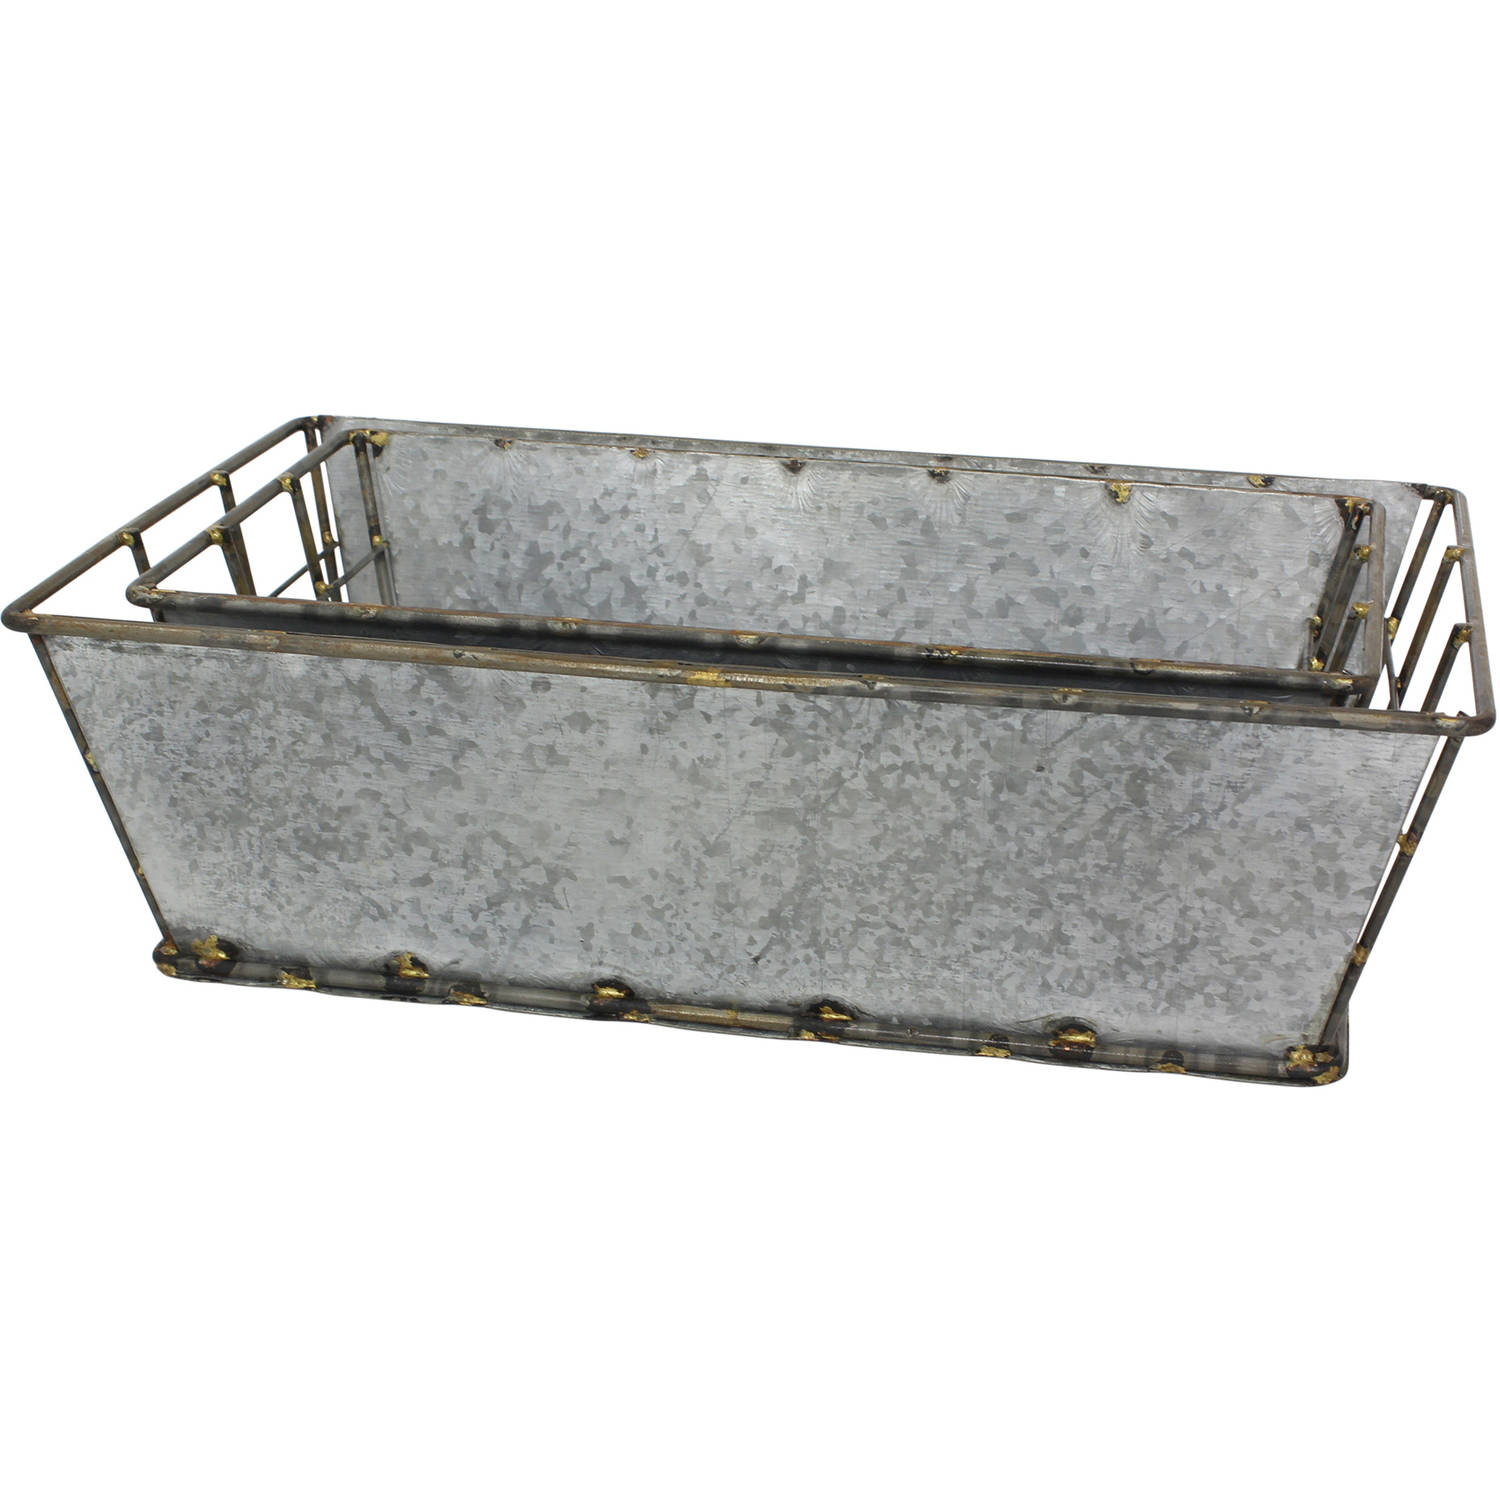 Rectangular Antique Galvanized Metal Baskets, Set of 2